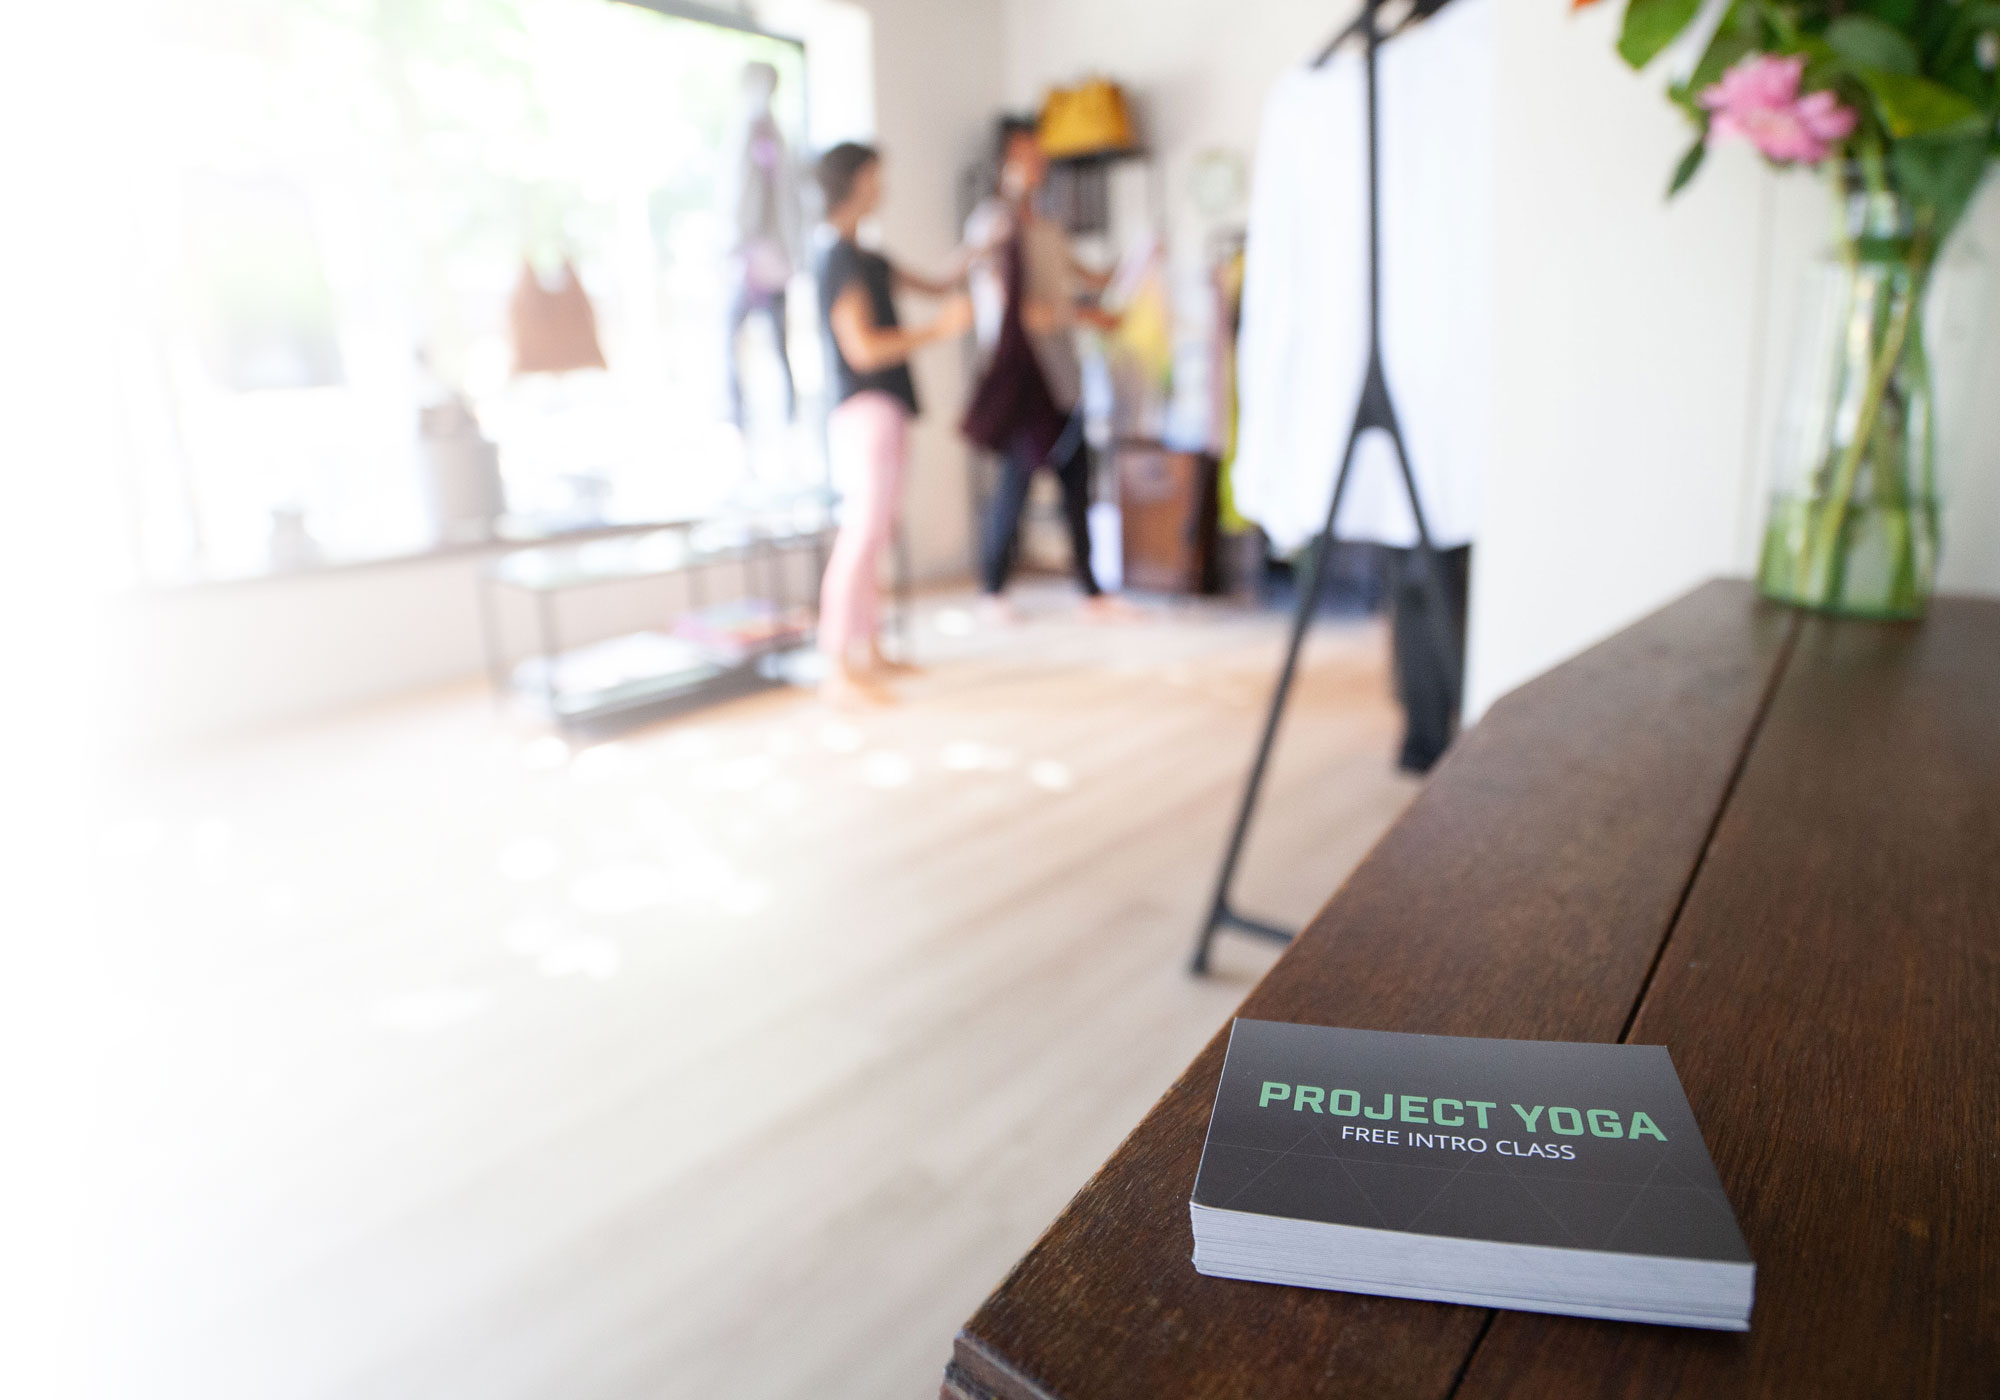 project-yoga-amsterdam-pricing-2